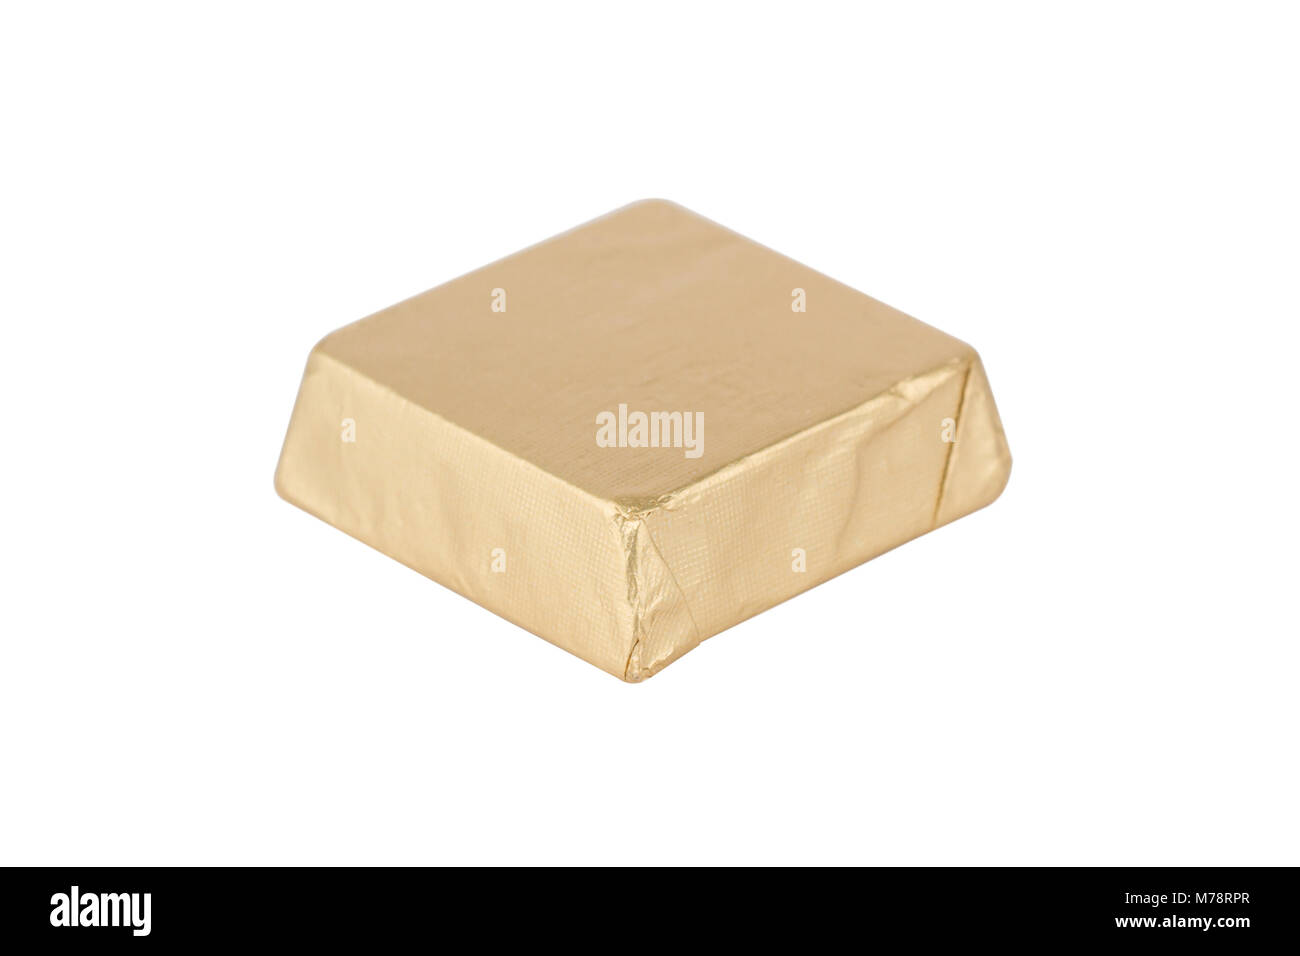 Top View Closeup Of Chocolate Candy Bar Wrapped In Golden Foil Stock